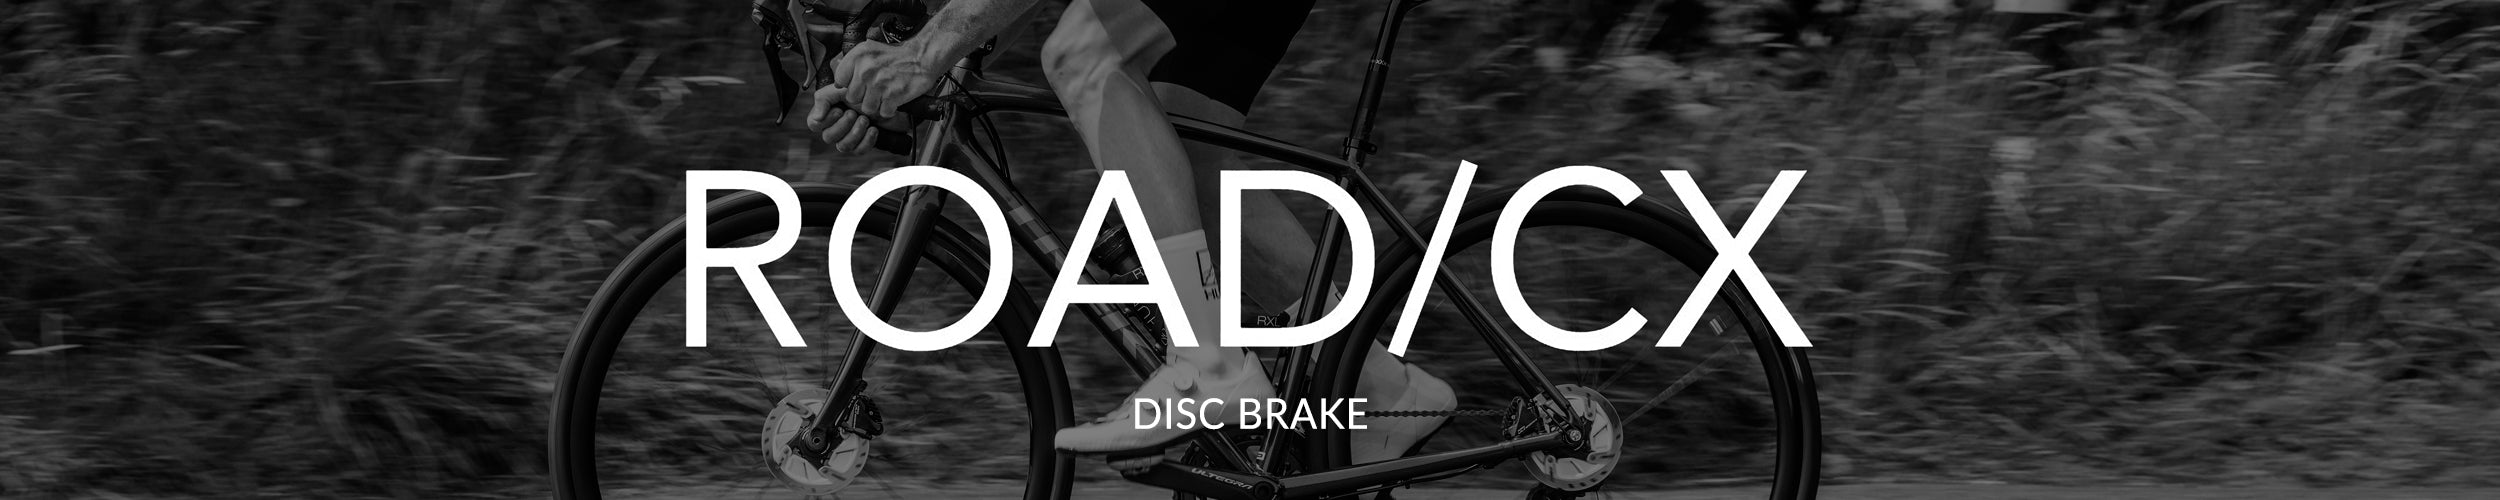 Road-cx-wheelset-collection